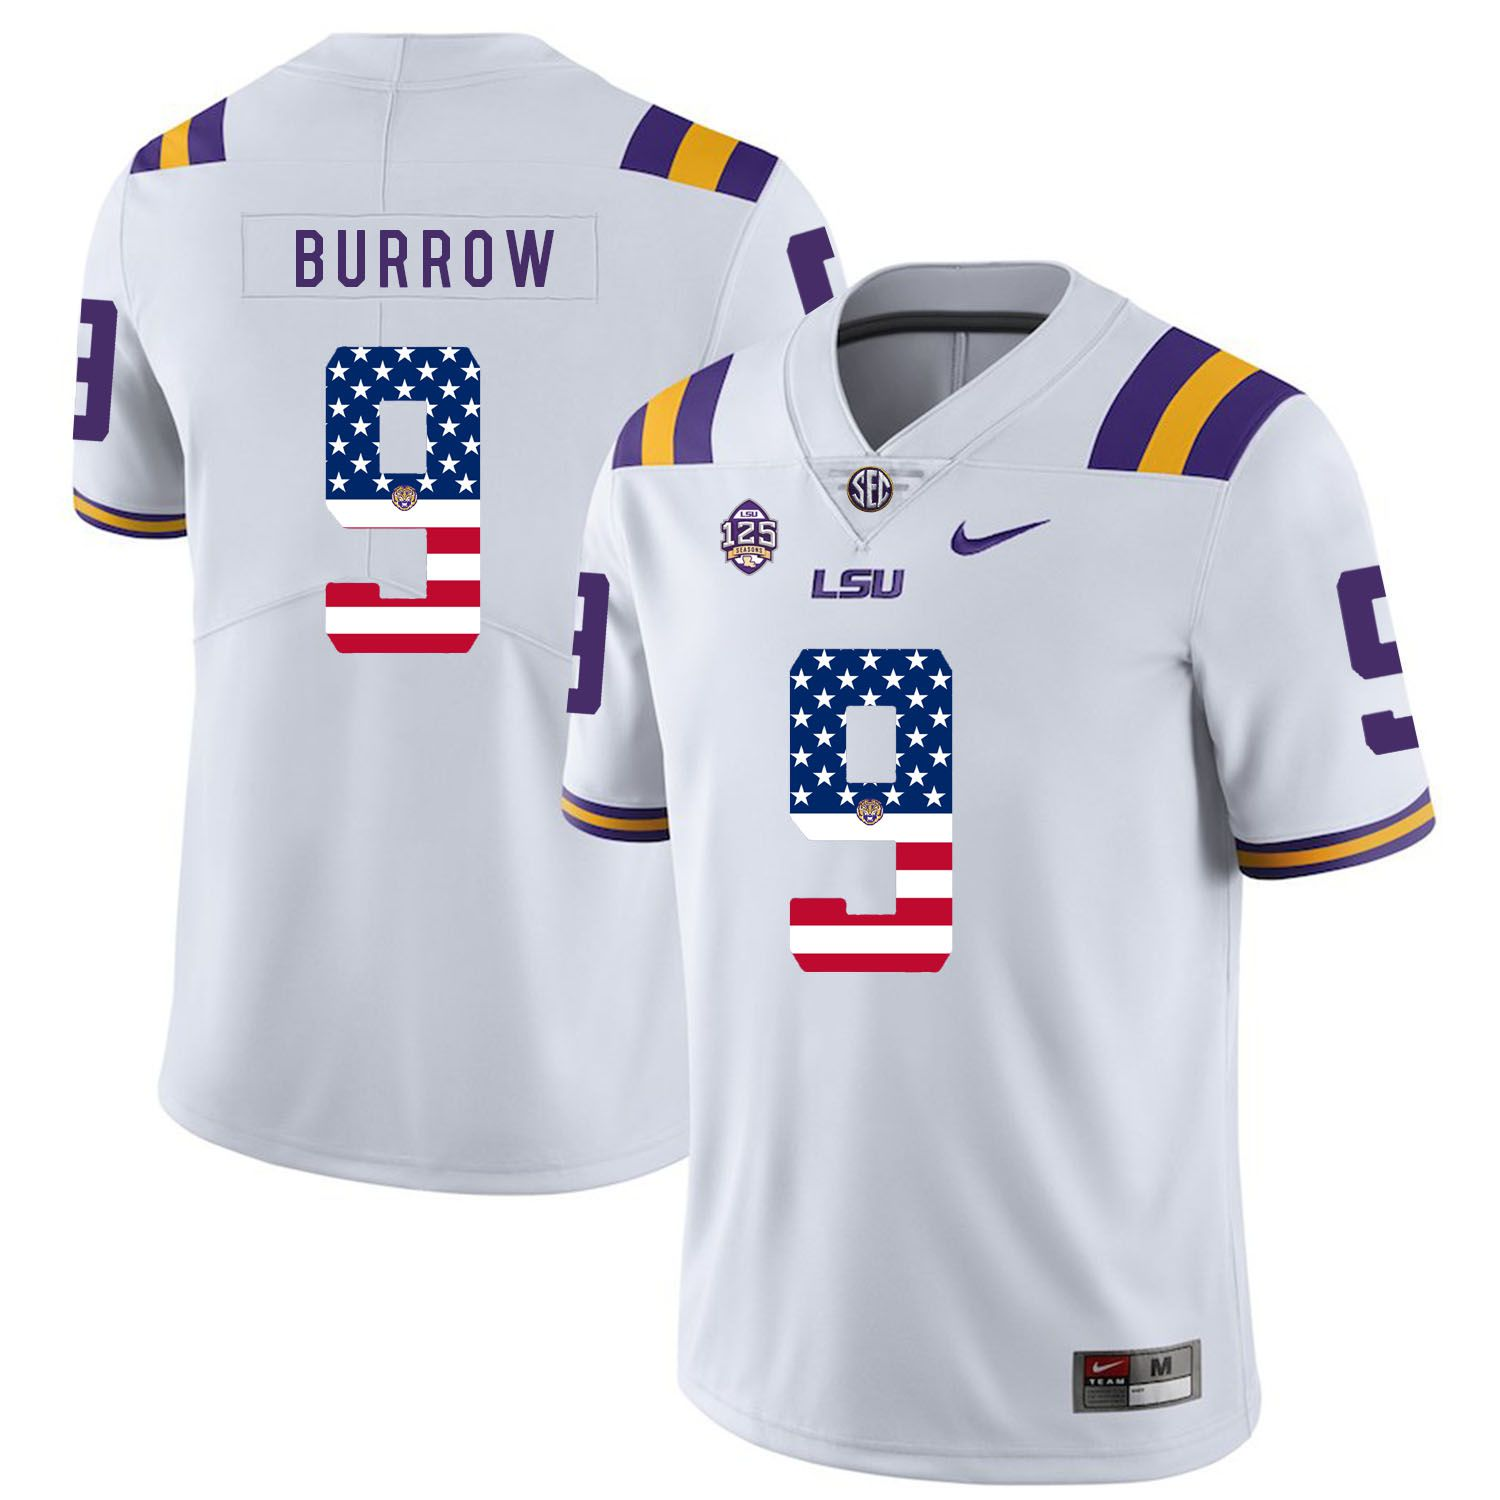 Men LSU Tigers 9 Burrow White Flag Customized NCAA Jerseys